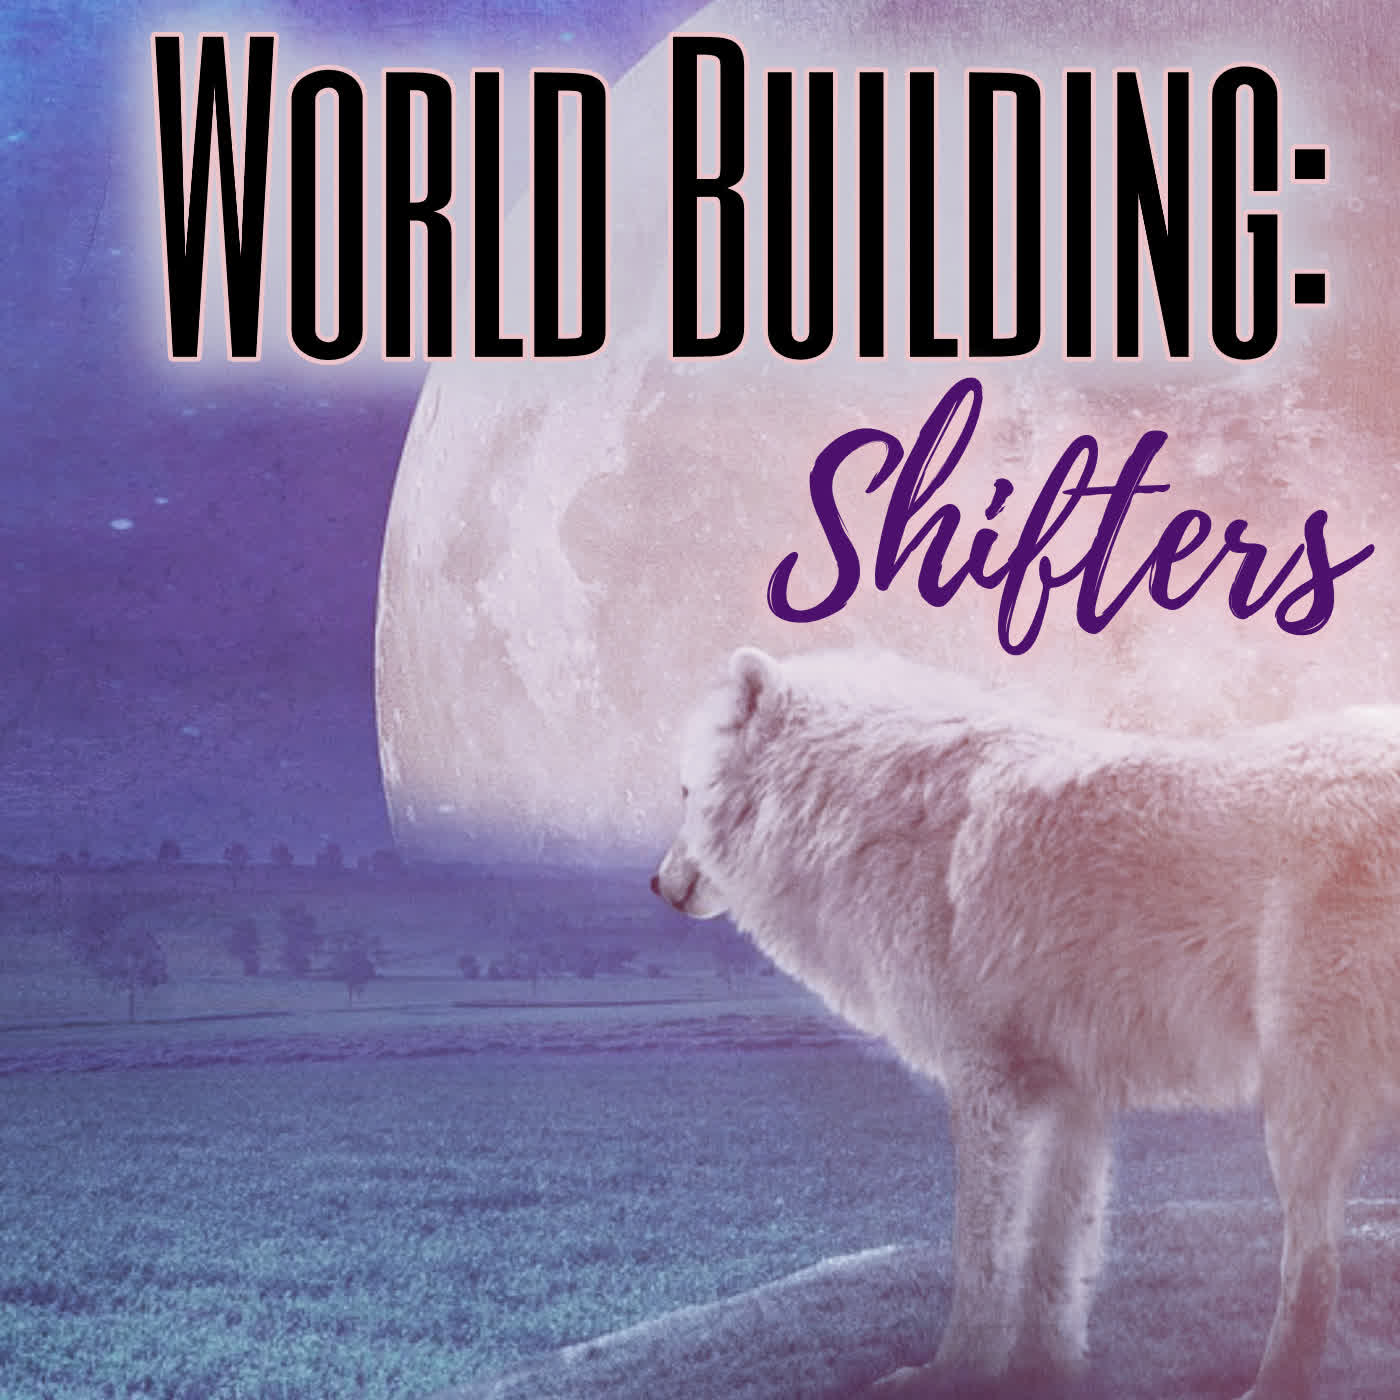 World Building: Shifters